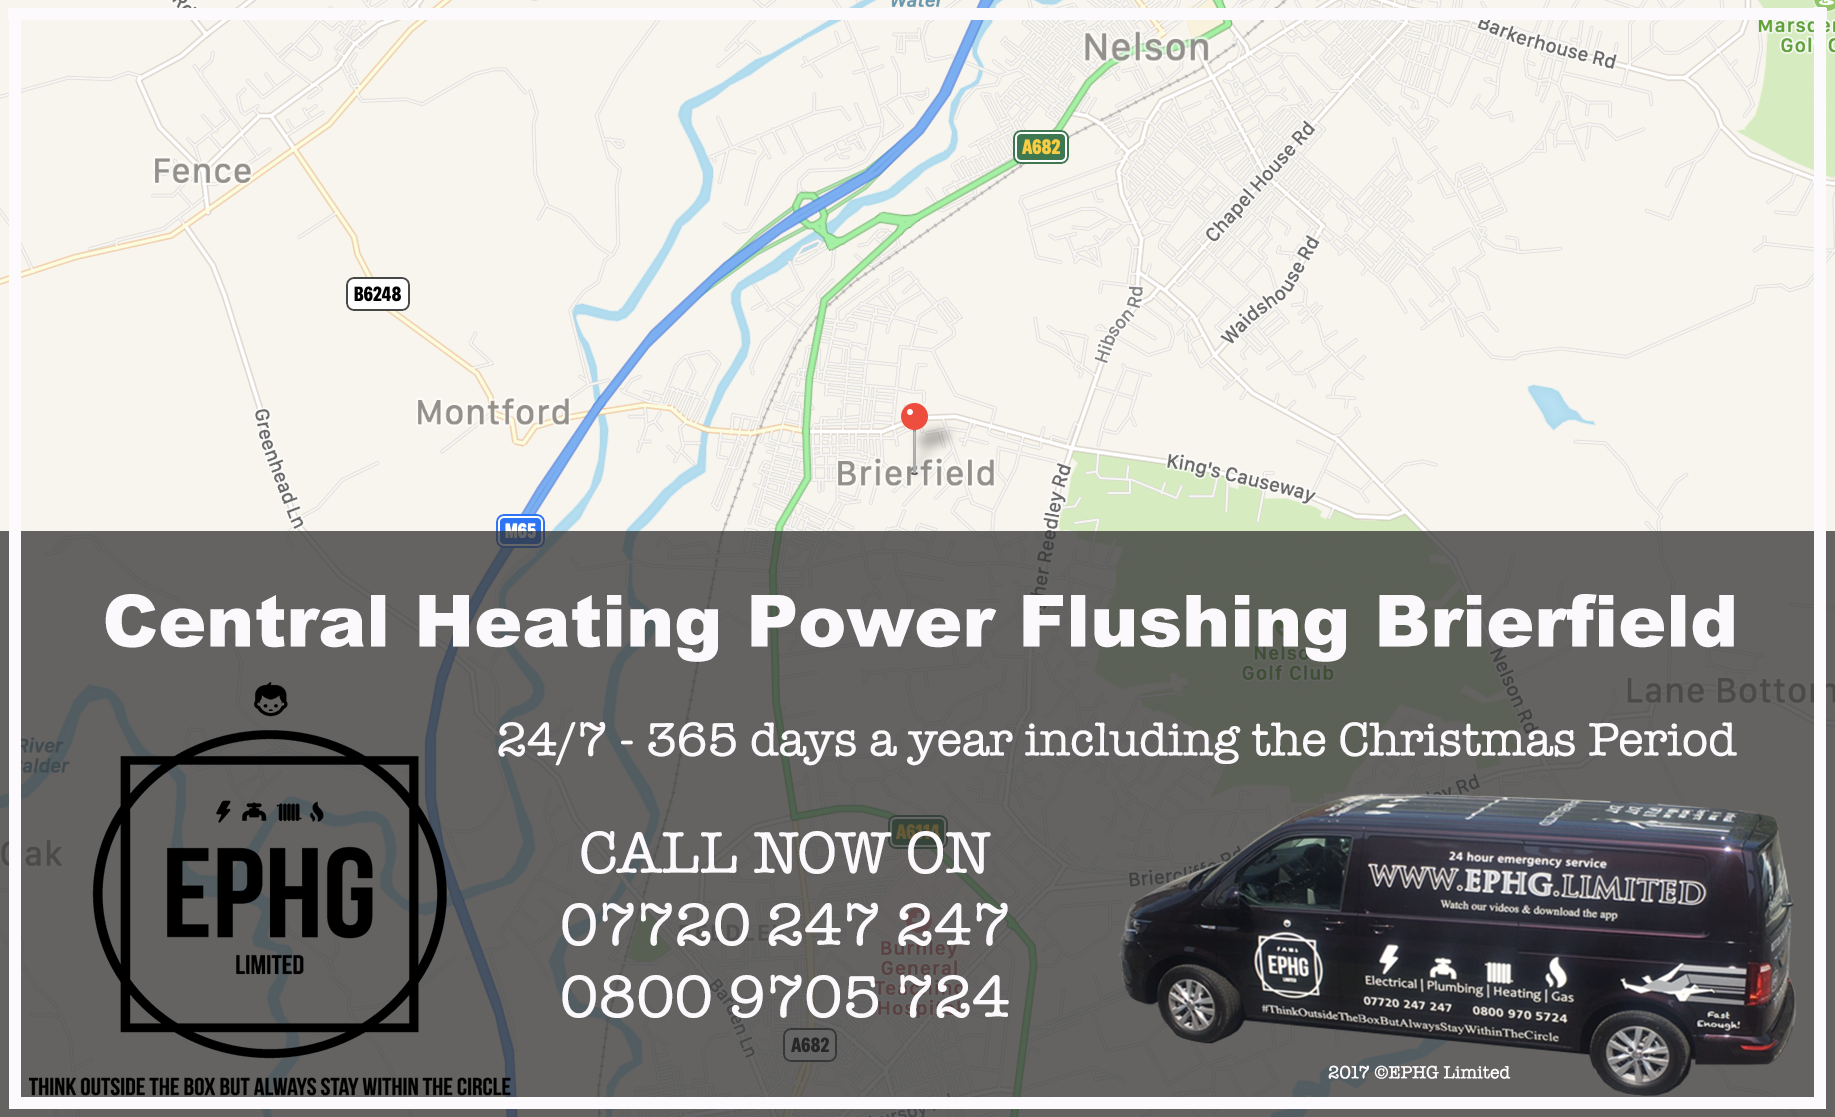 Central Heating Power Flush Brierfield